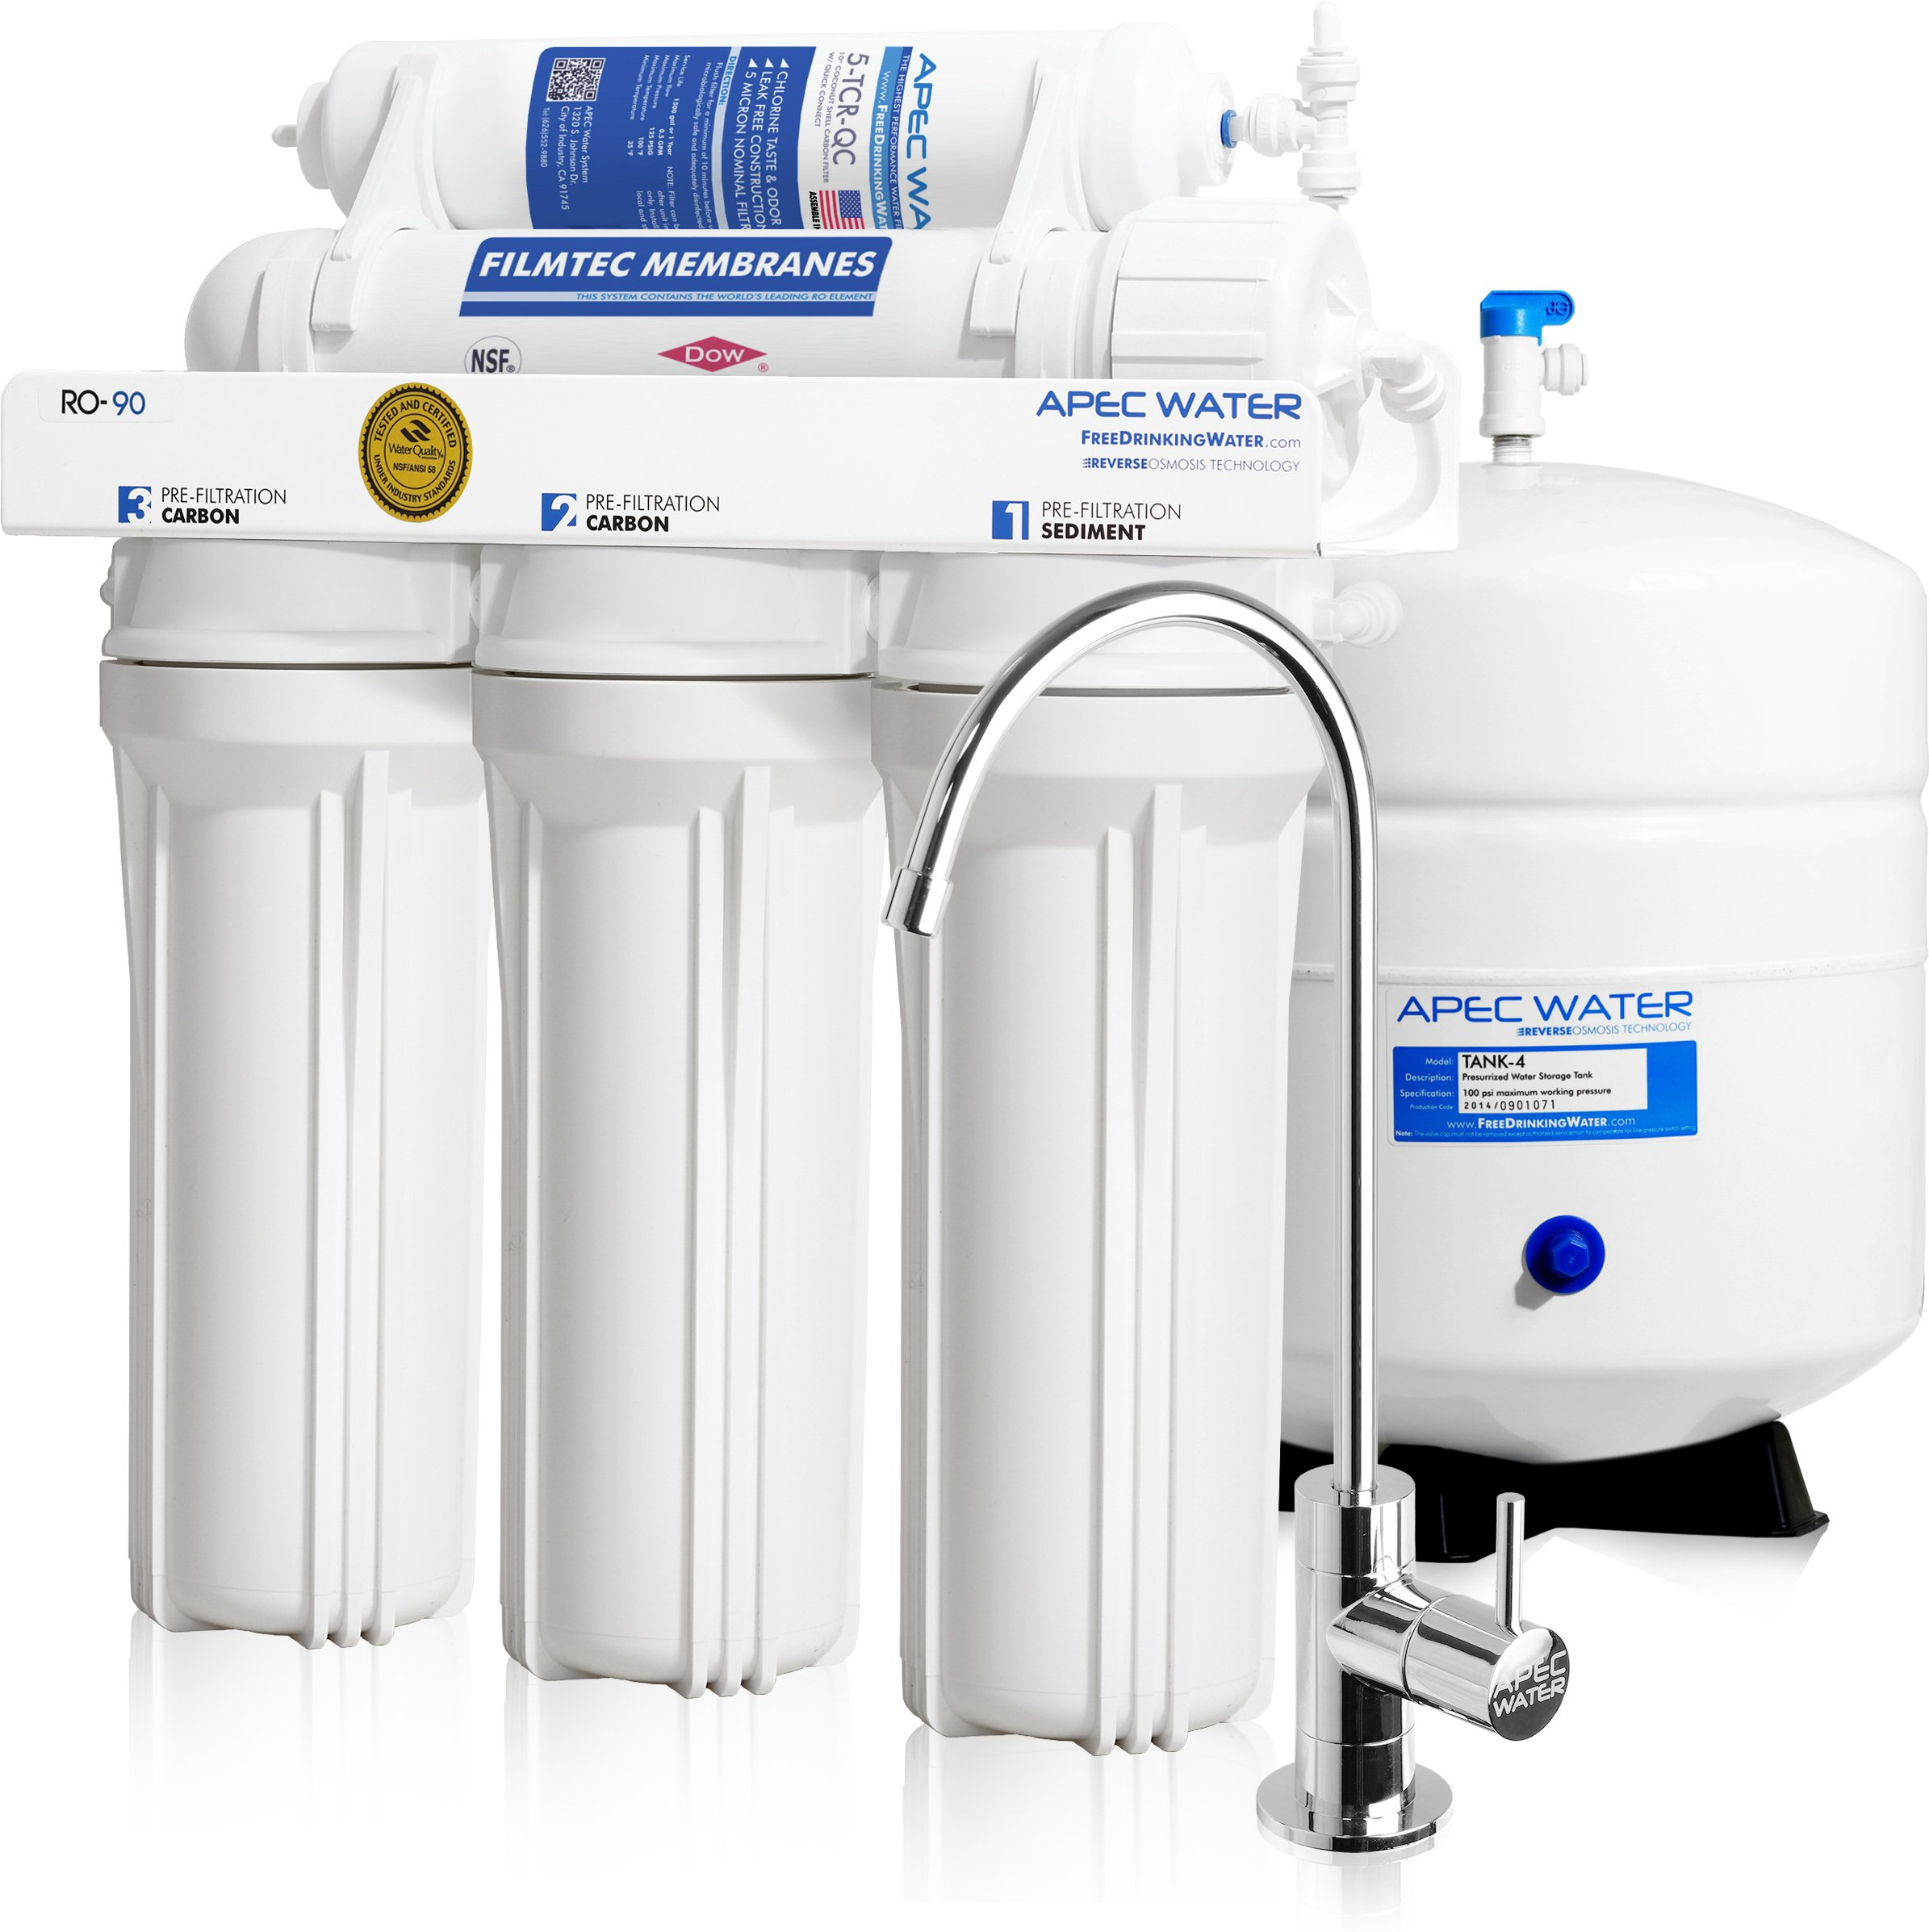 for whole the urban filters best com house find household system in water countertop very getawaterfilter pin your filtration defender